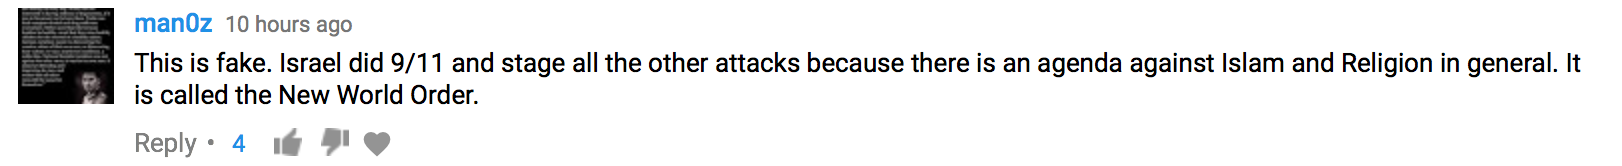 youtube comments, racist comments, terrorism comments,